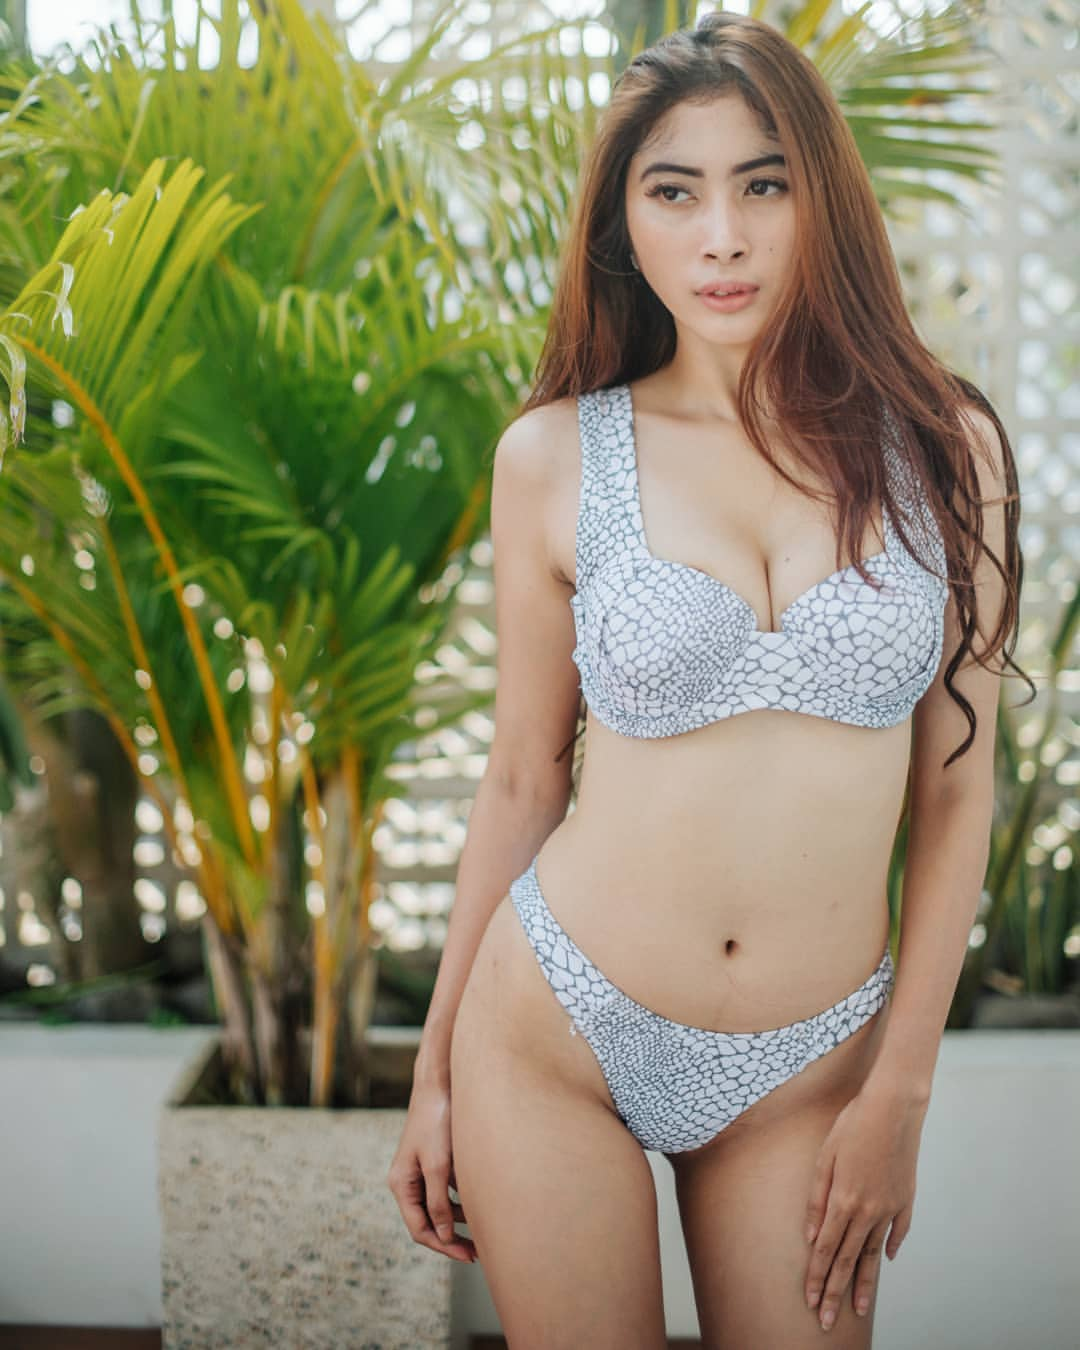 Photos nude girls indonesia